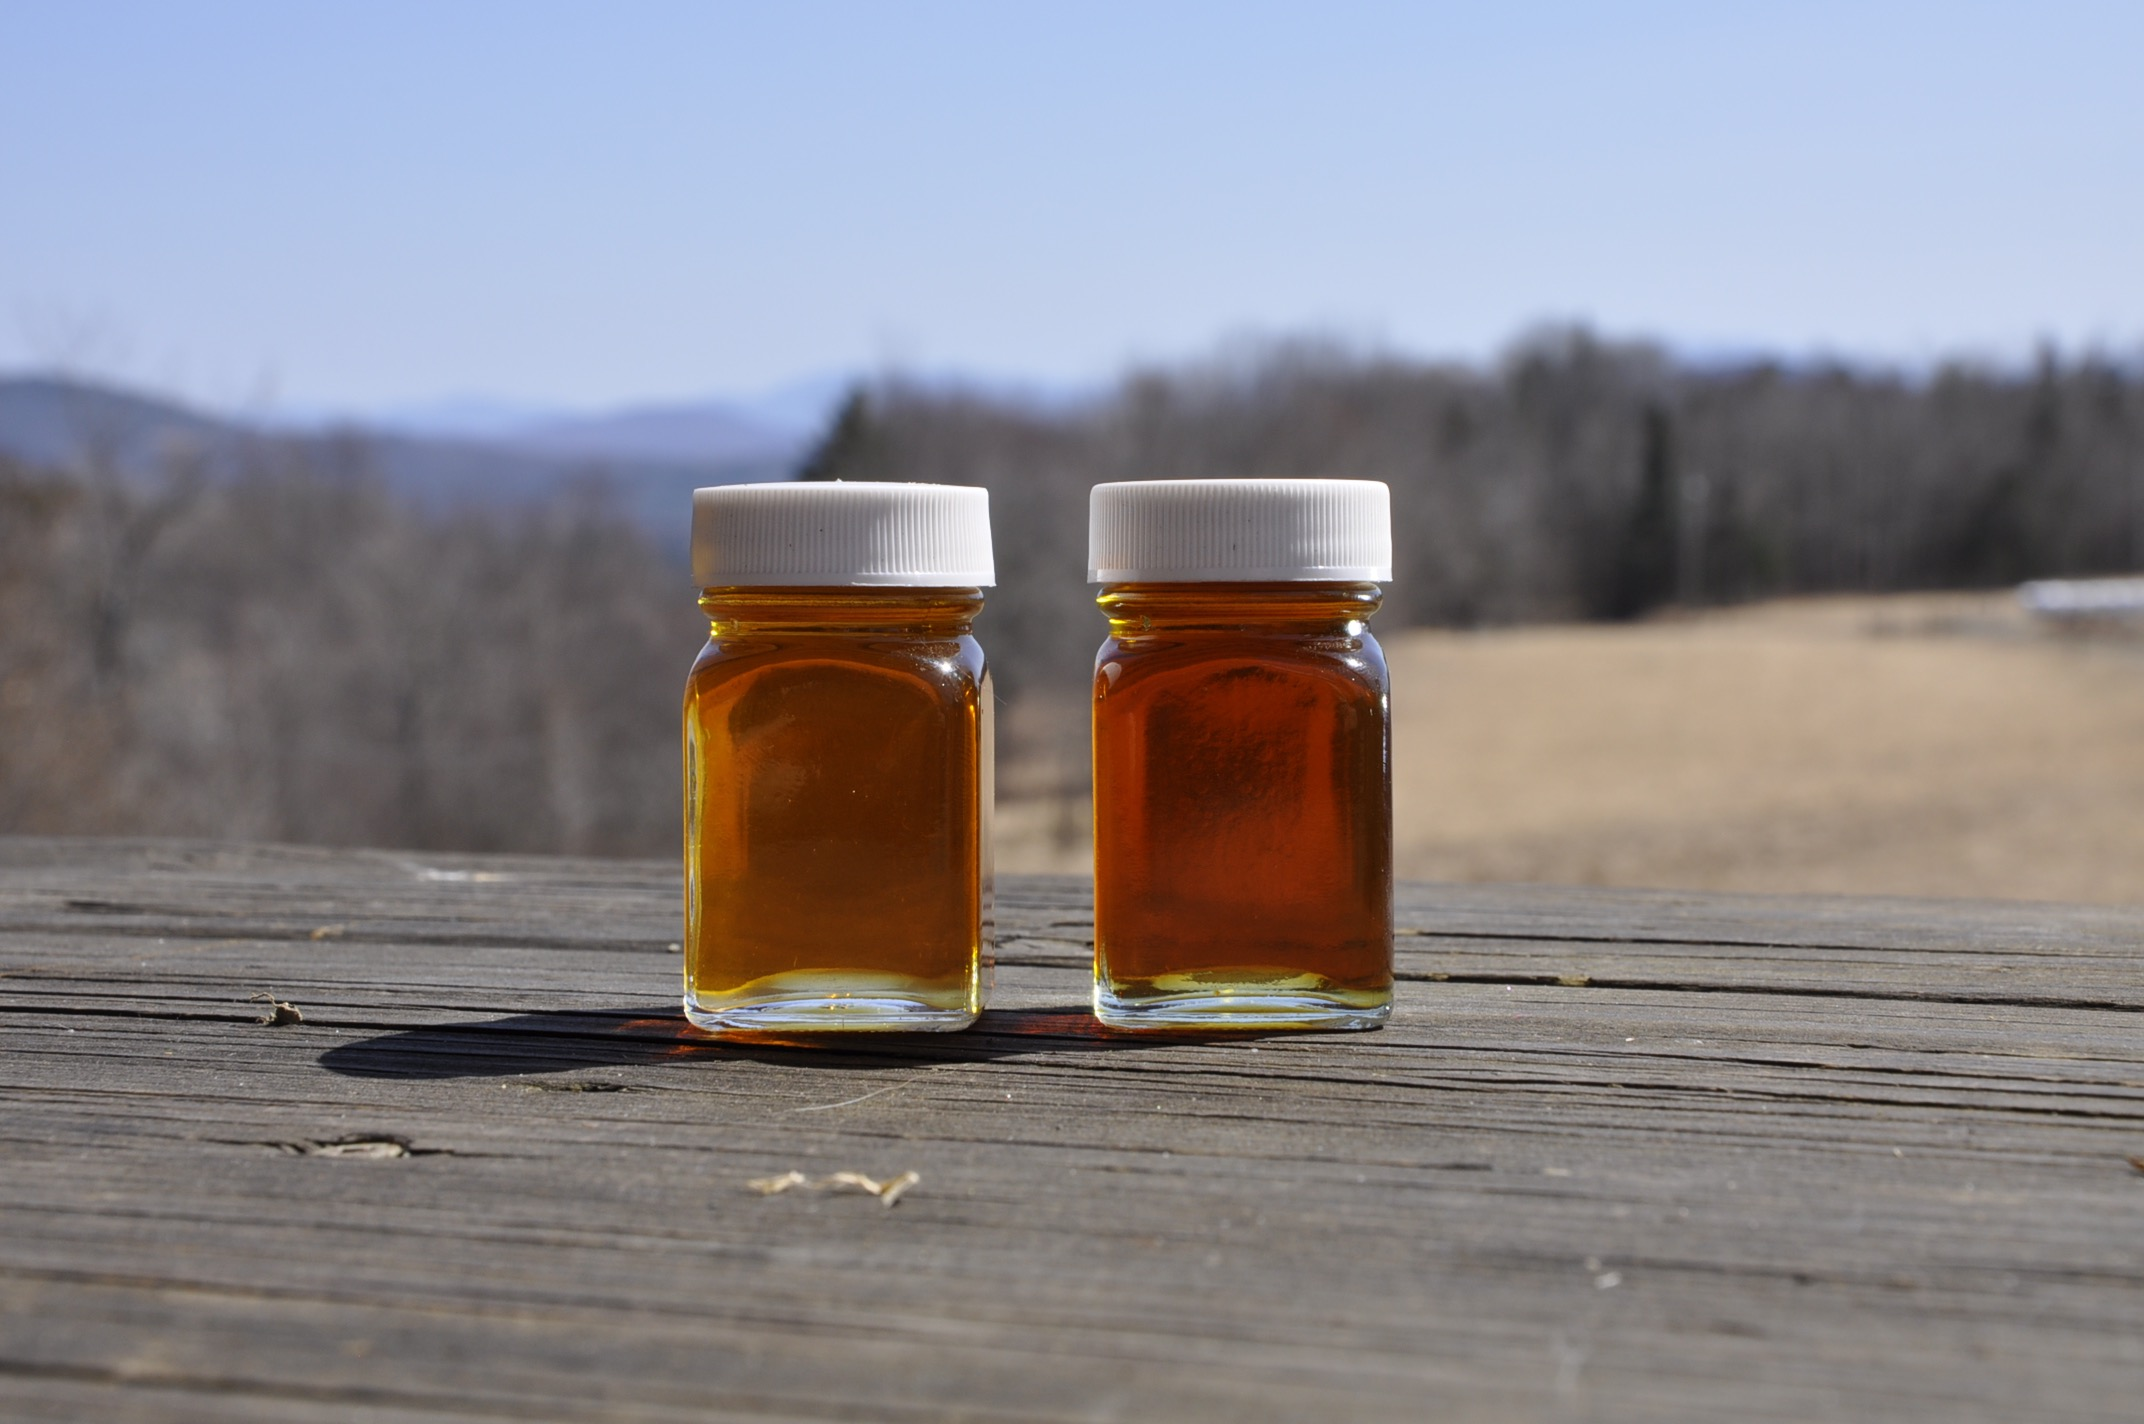 Our syrup  falls into 2 grades this year: Grade A Amber Color, Rich Taste Maple Syrup  (left)  and   Grade A Dark Color, Robust Taste Maple Syrup  (right).